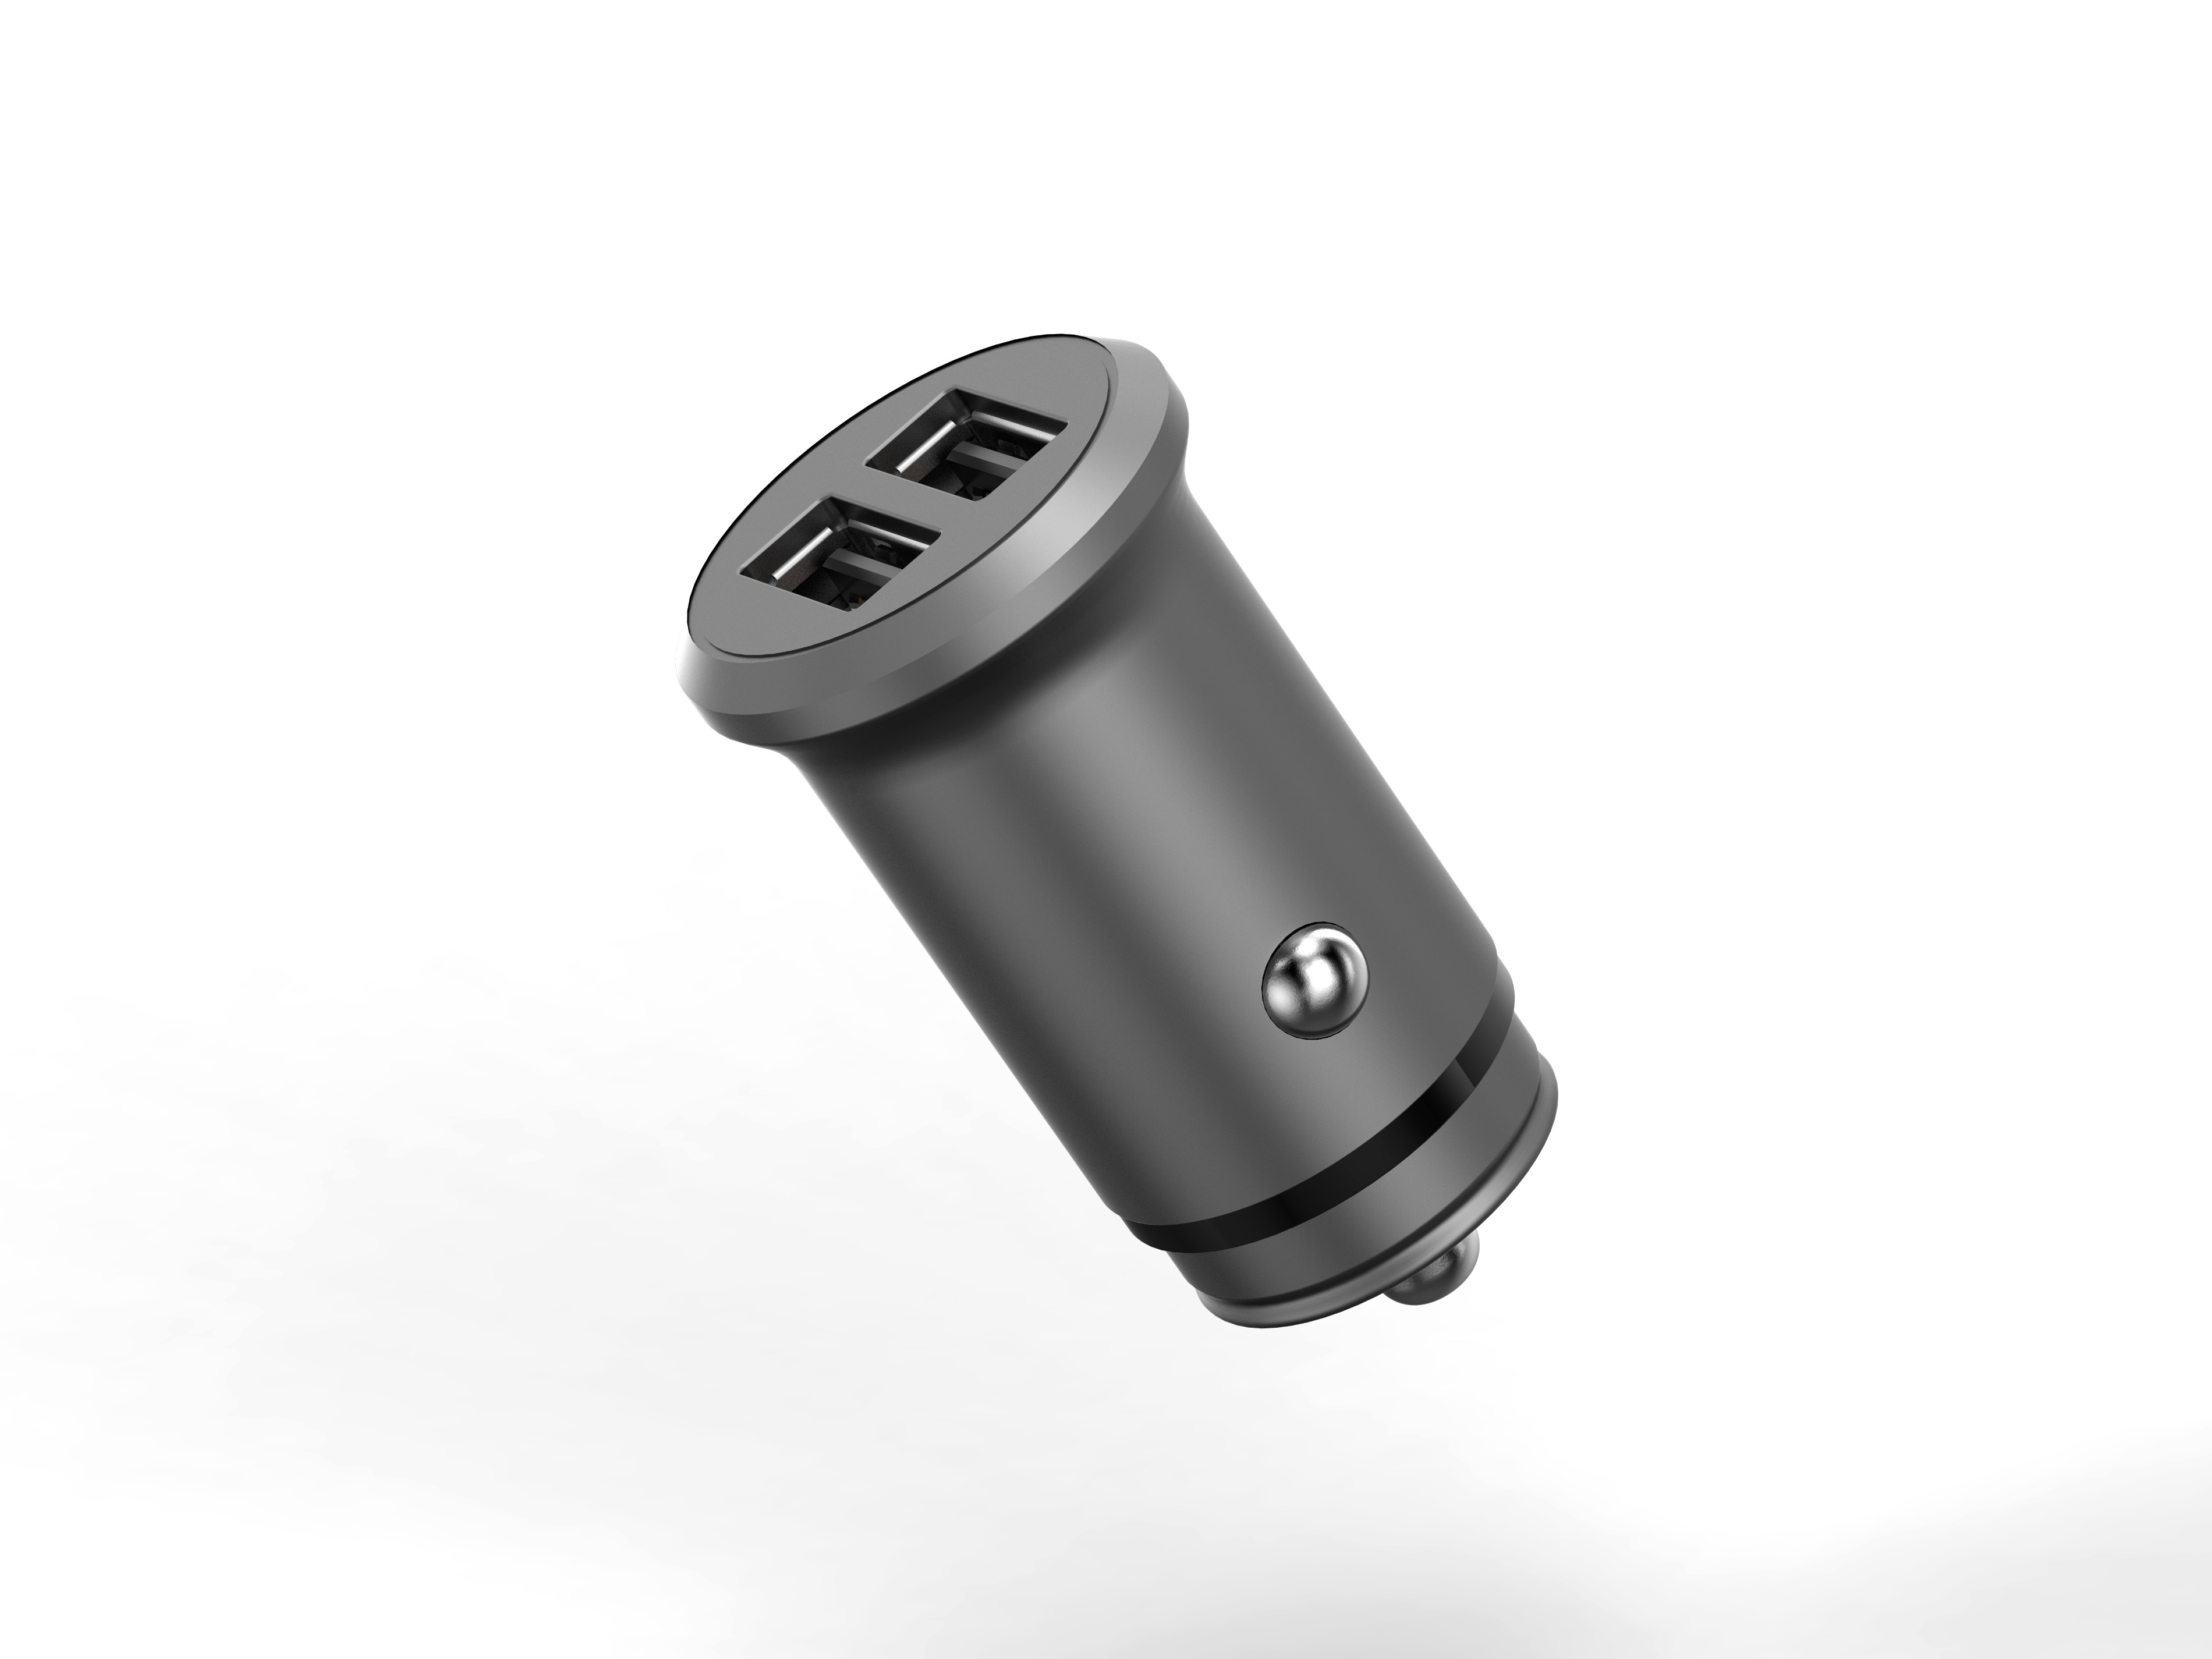 Mini usb car charger factory